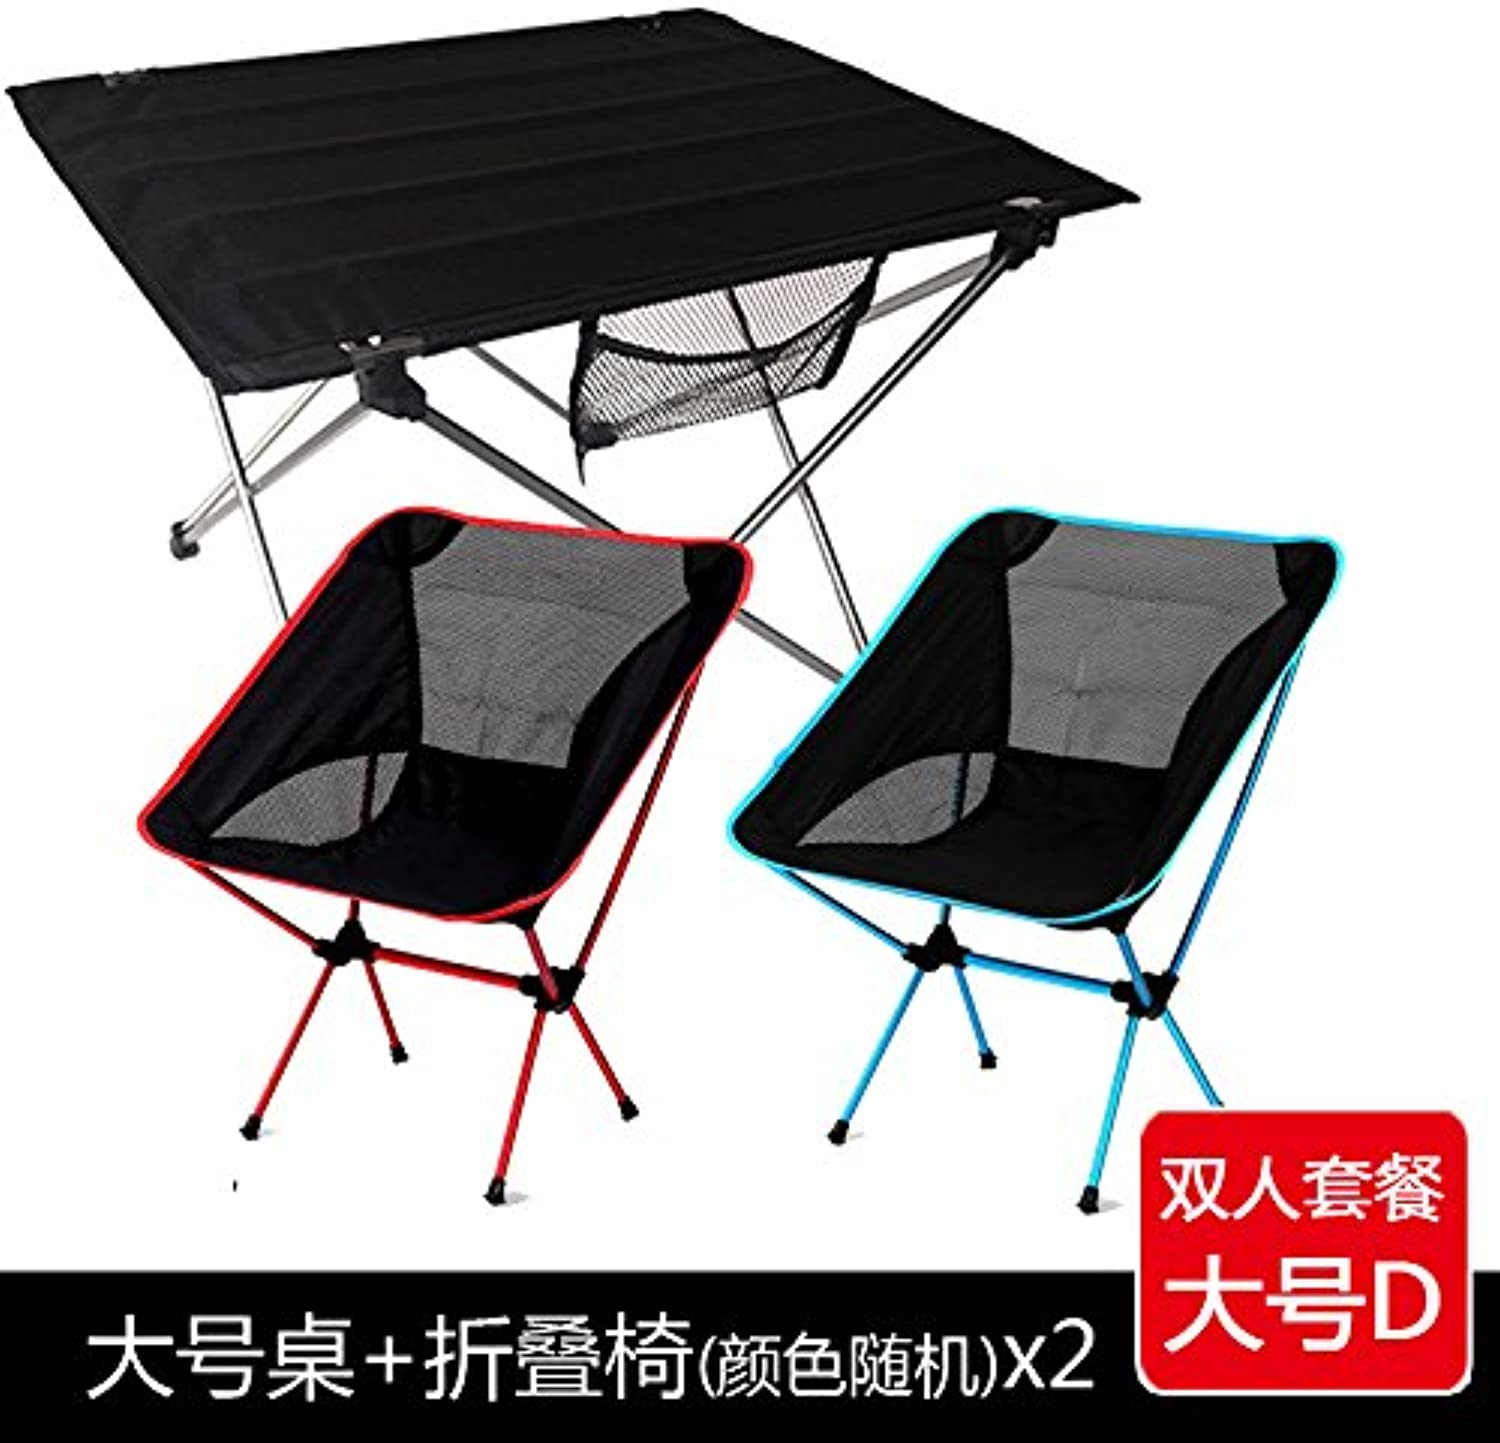 Xing Lin Outdoor Table Outdoor Barbecue Picnic Table Chair Portable Beach Folding Table Light Aviation Aluminum Alloy Table, Large Table + 2 Moon Chairs = 280